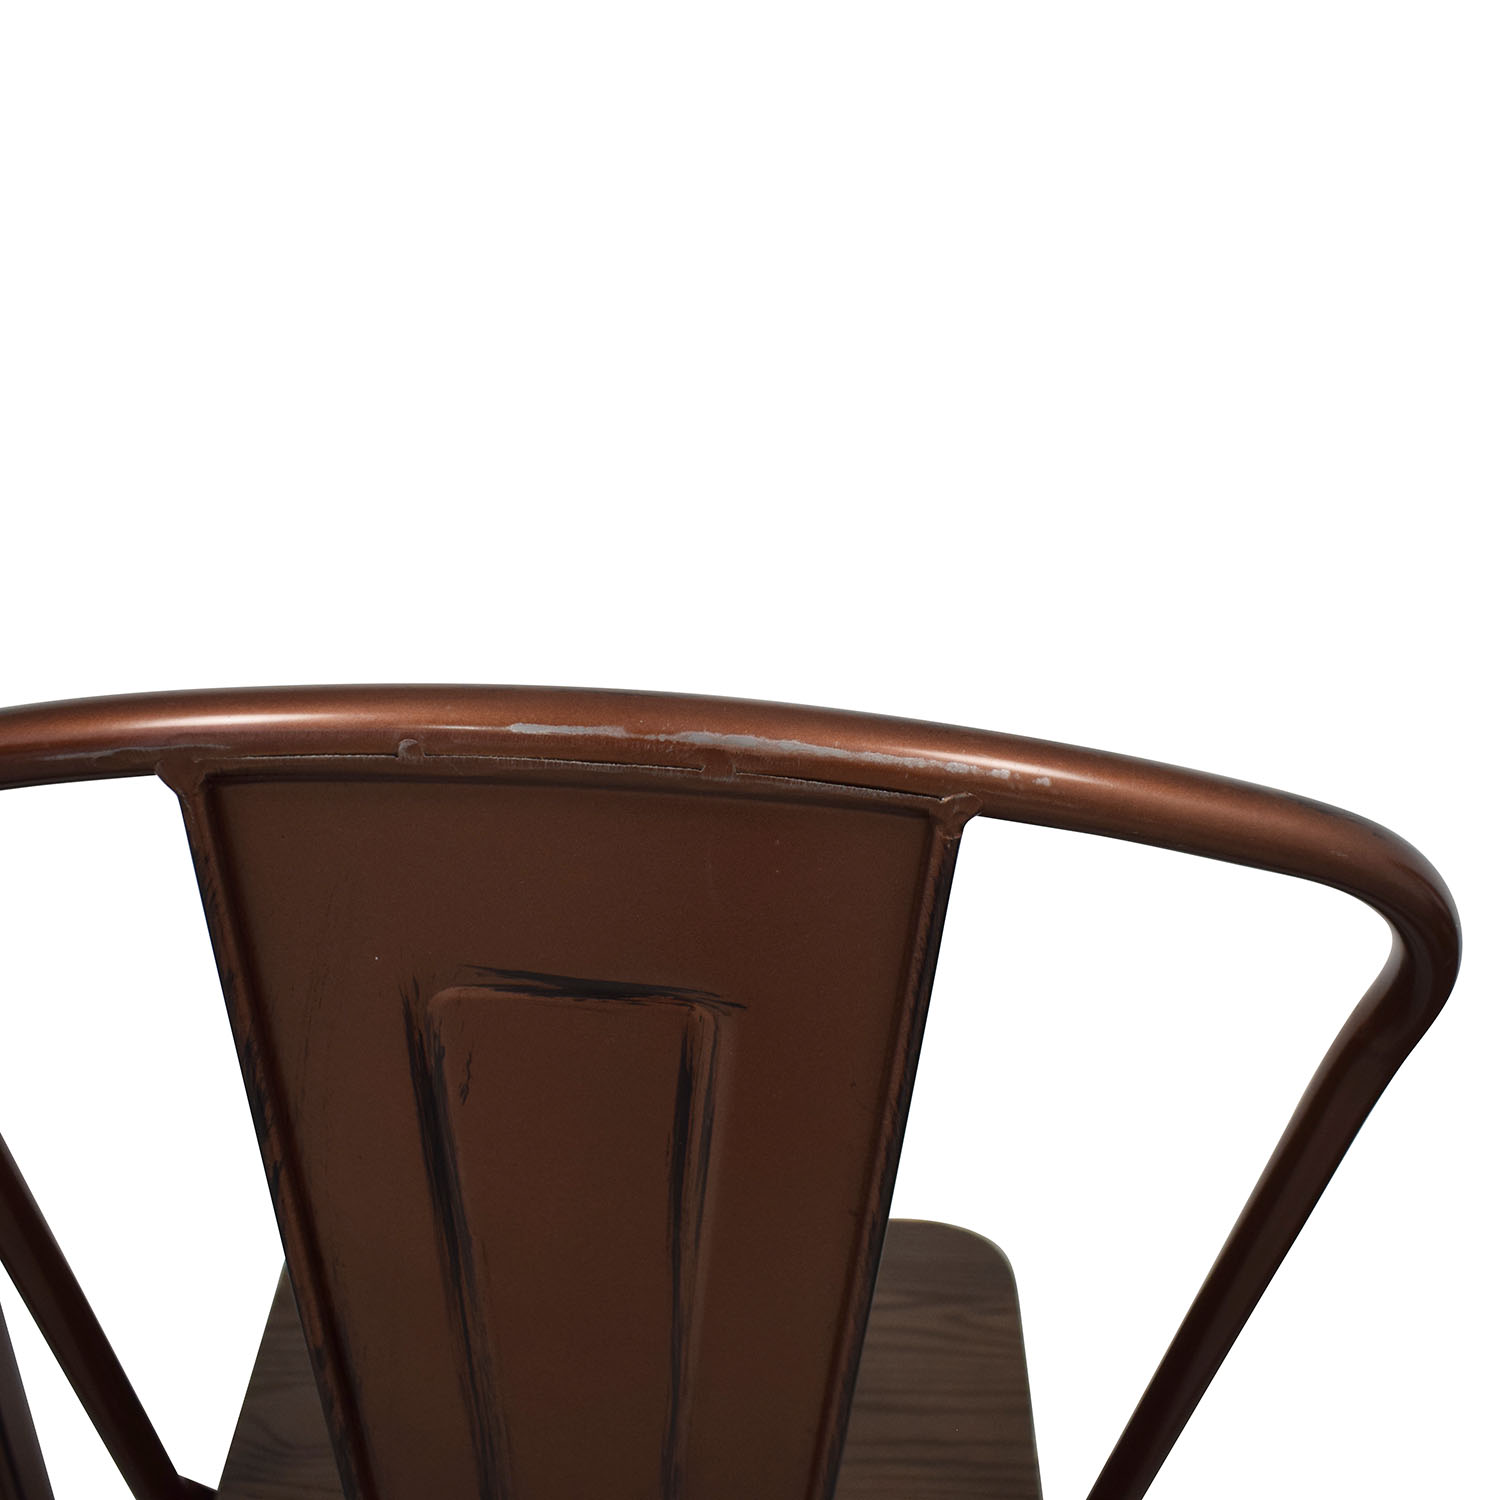 buy Overstock Overstock Tabouret Wood Seat Brushed Copper Bistro Bar Stools online